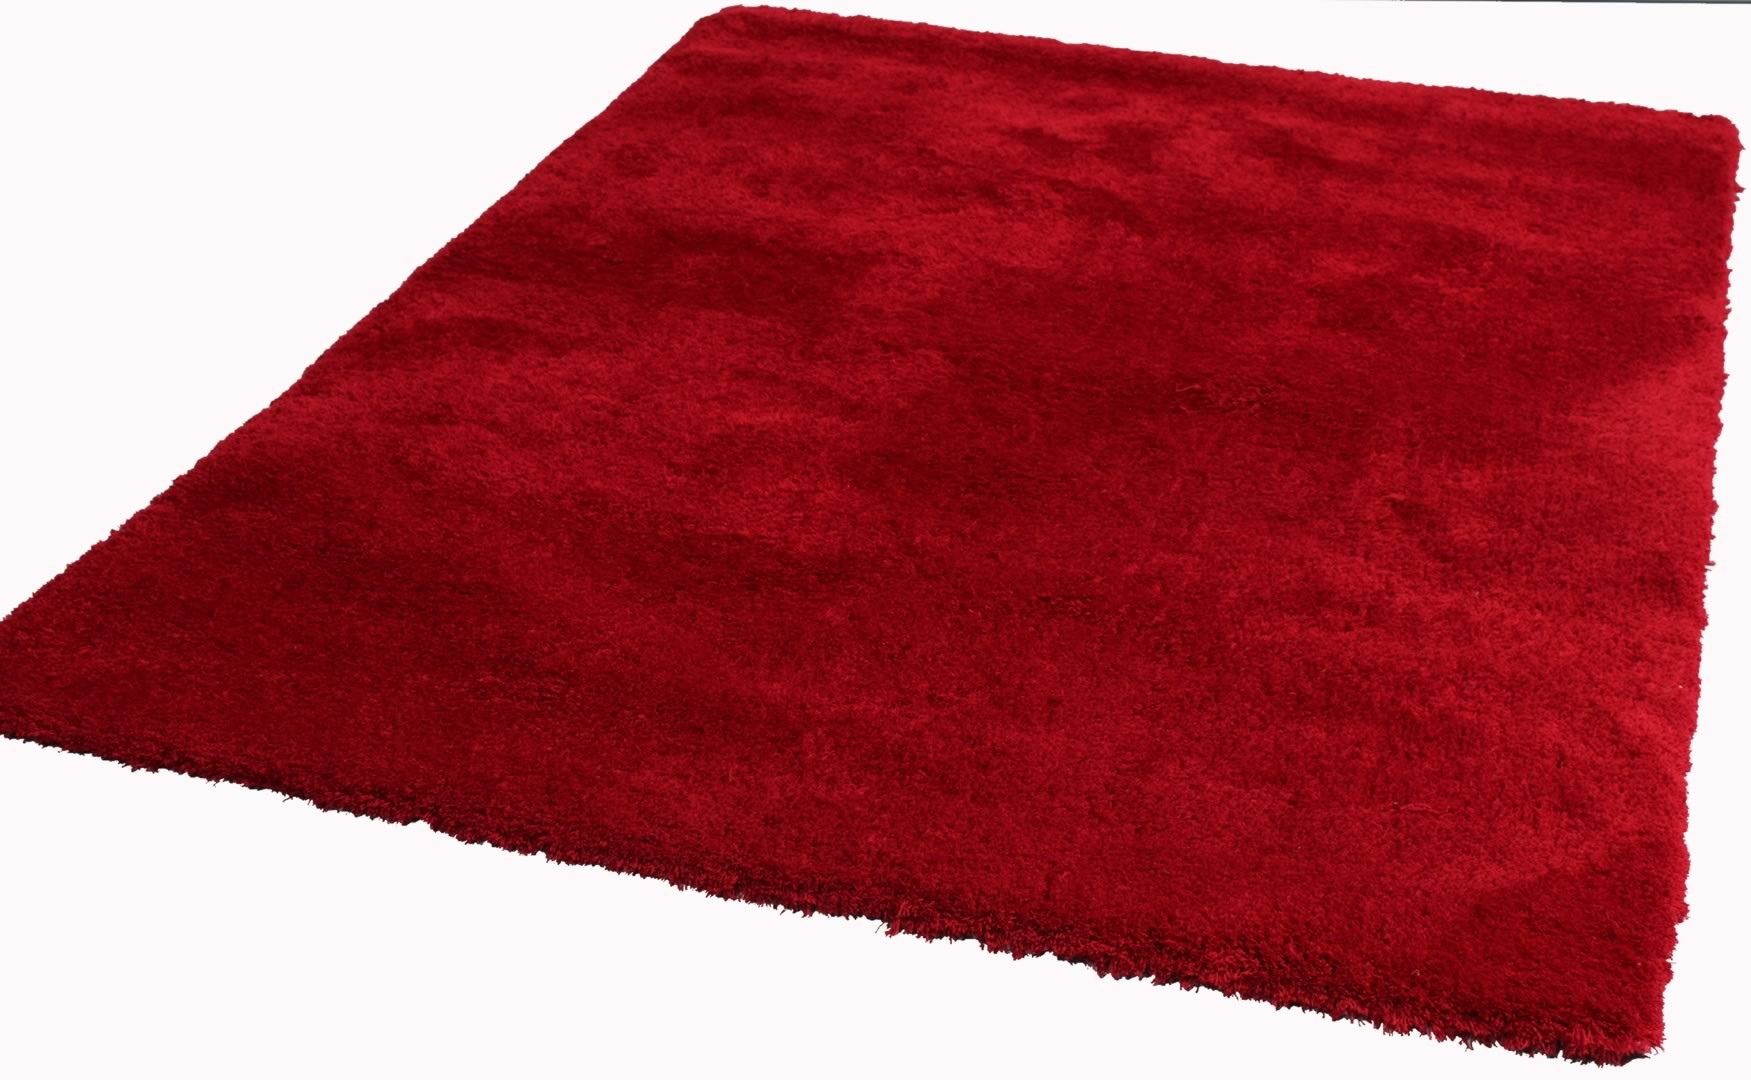 Carrelage design tapis rouge salon moderne design pour carrelage de sol e - Tapis rouge pour salon ...